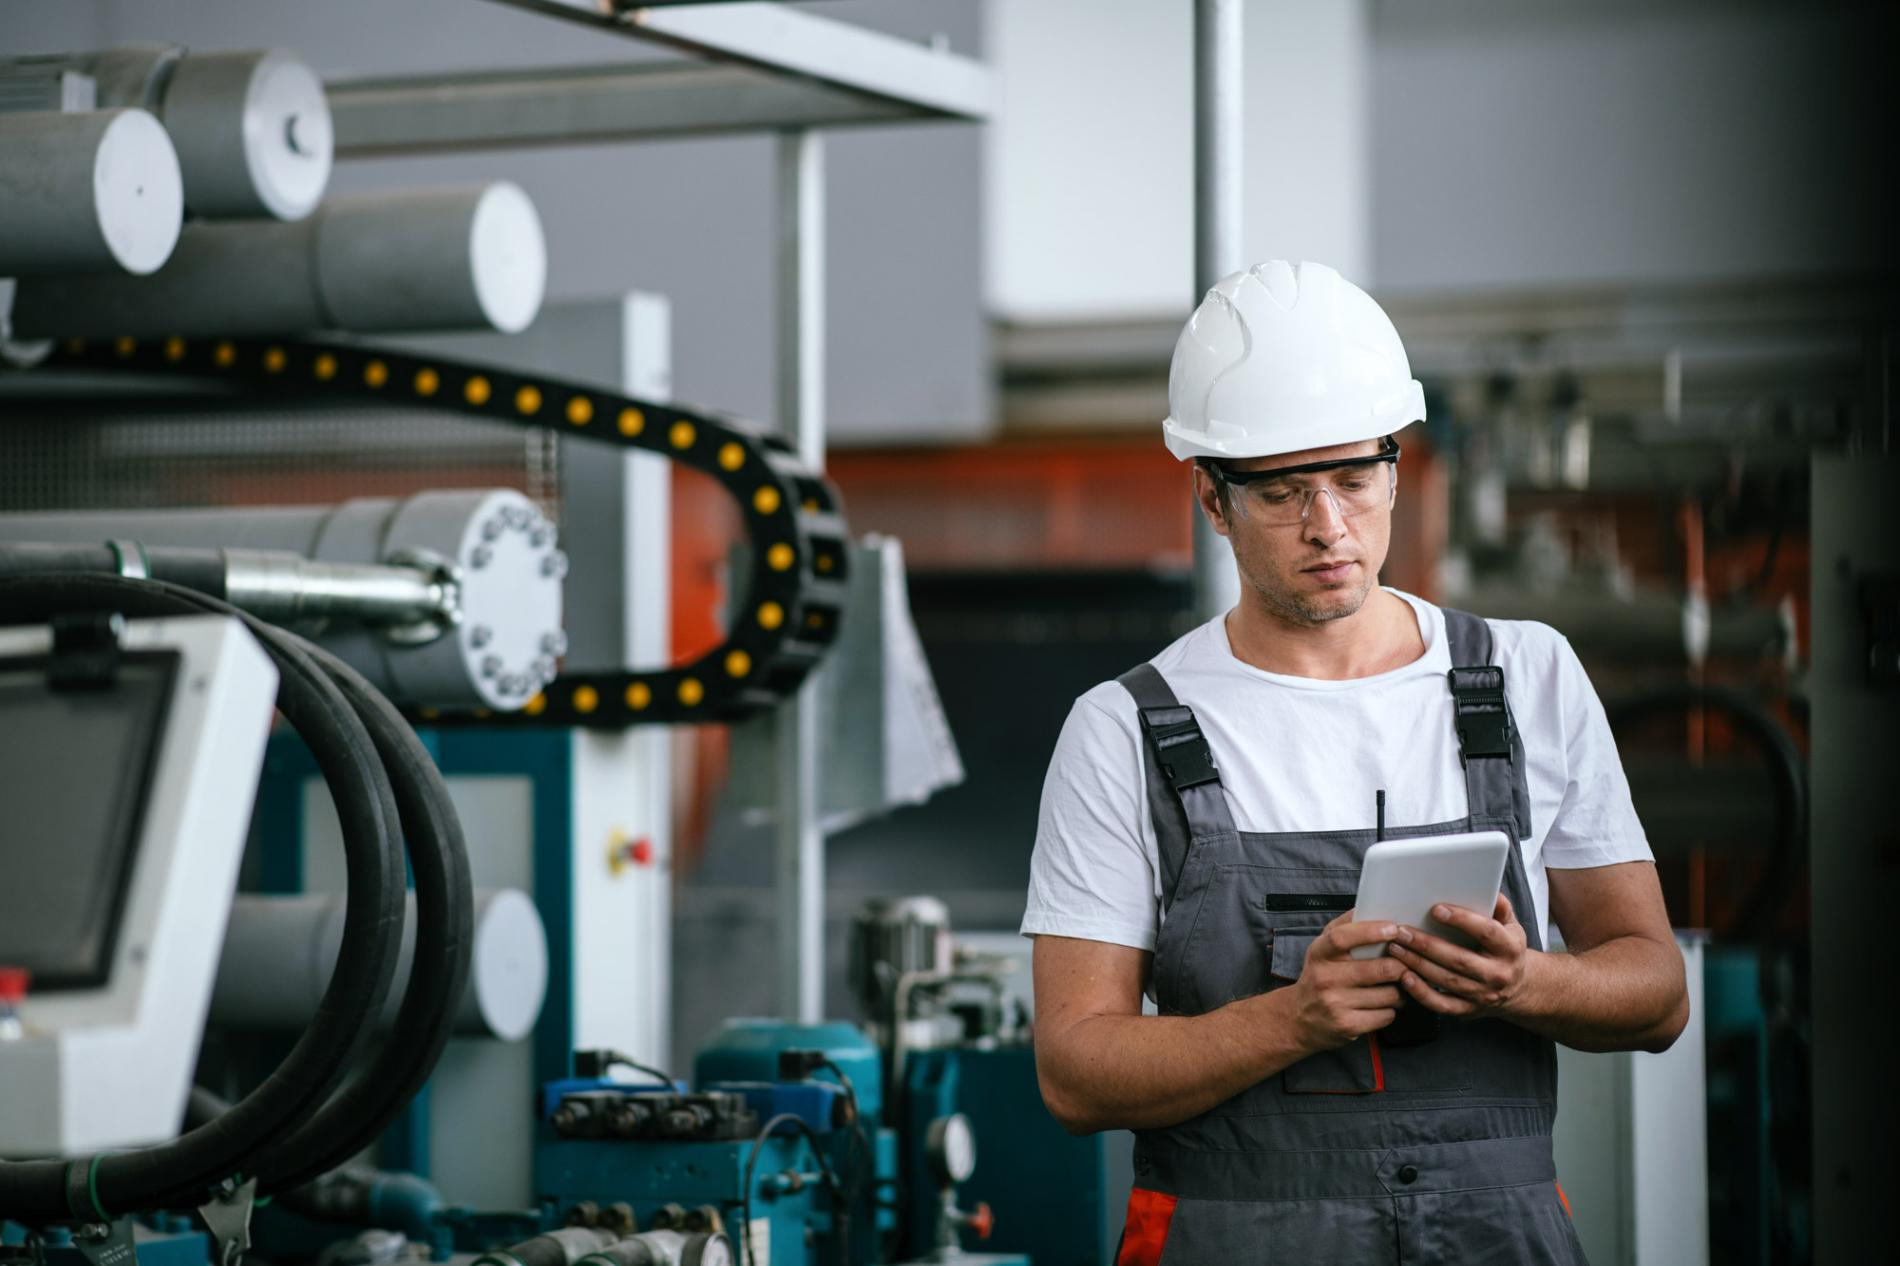 Man standing next to machine, looking at tablet